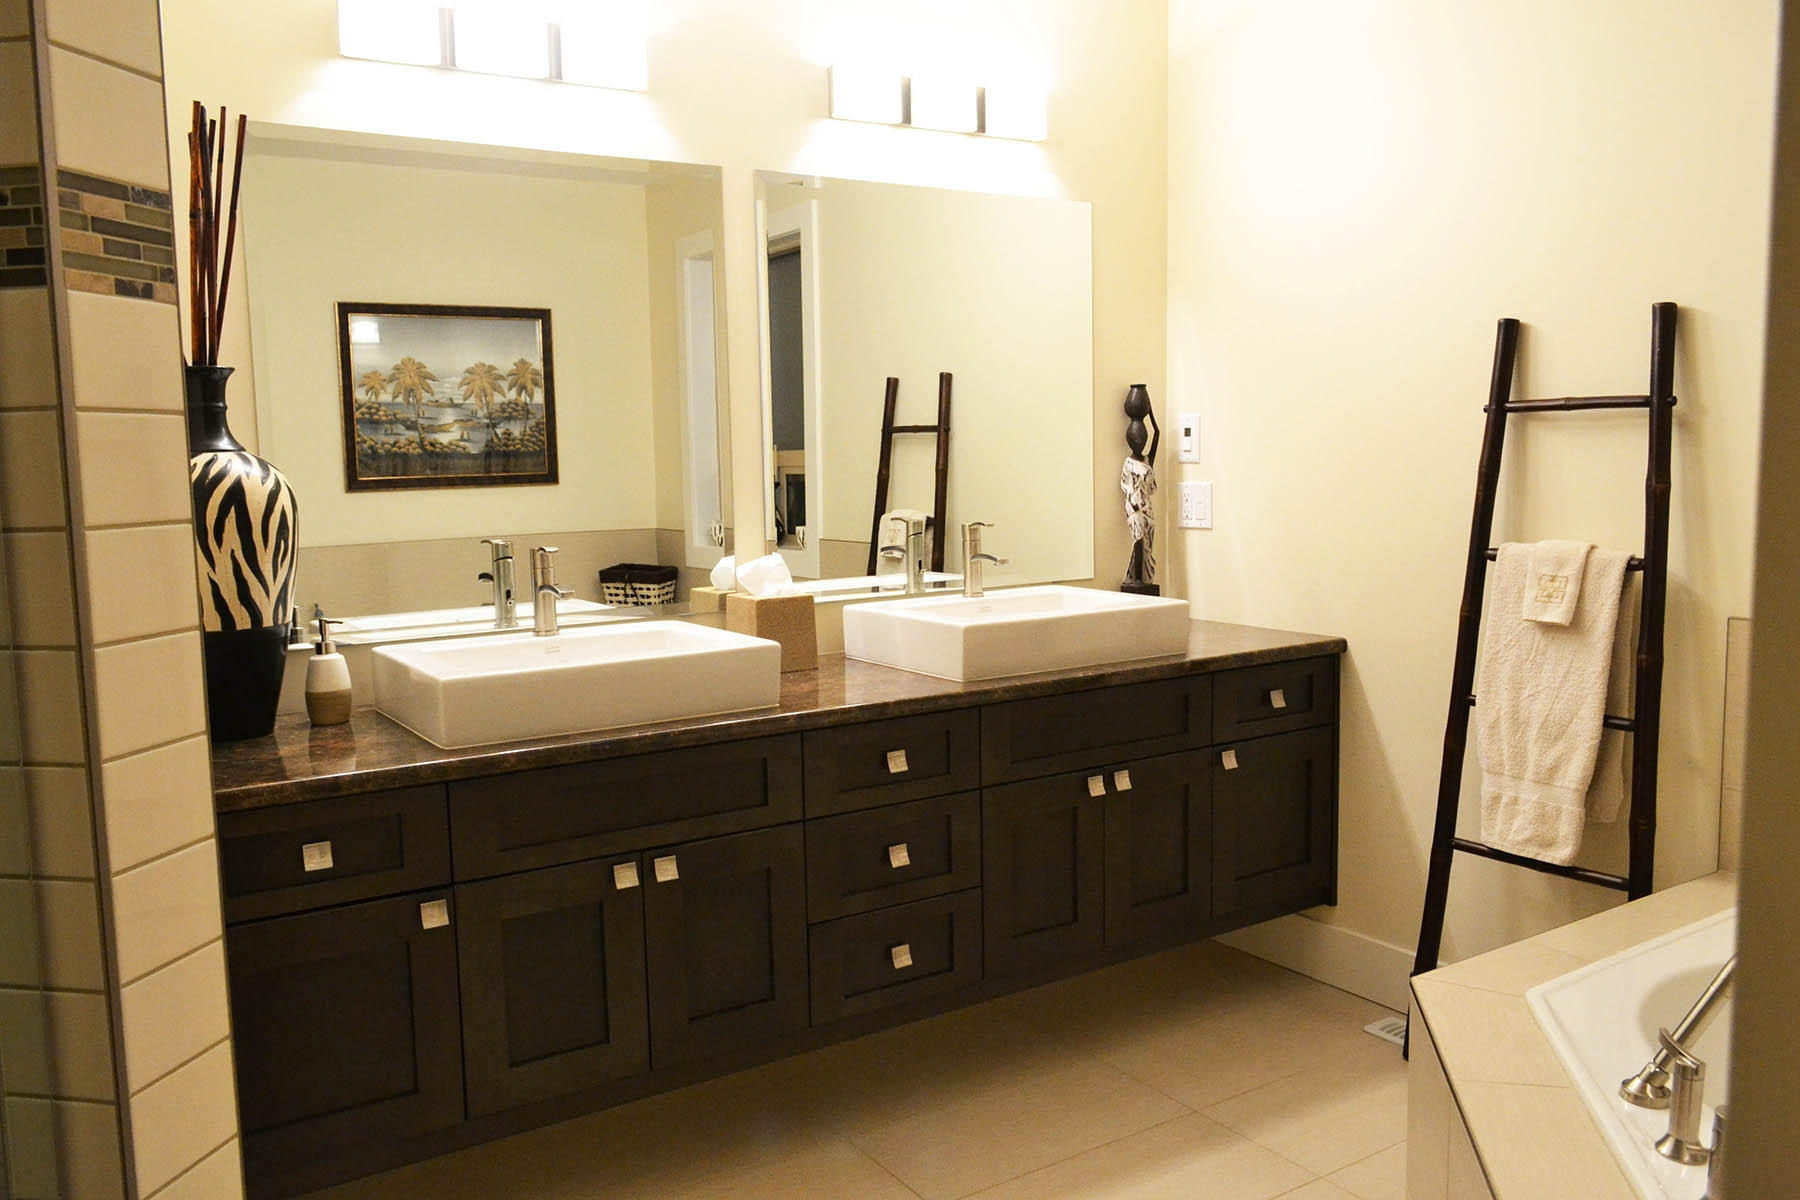 double vanity ideas for small bathrooms cool design ideas double vanity for small bathroom sink vanities JKLHSDC